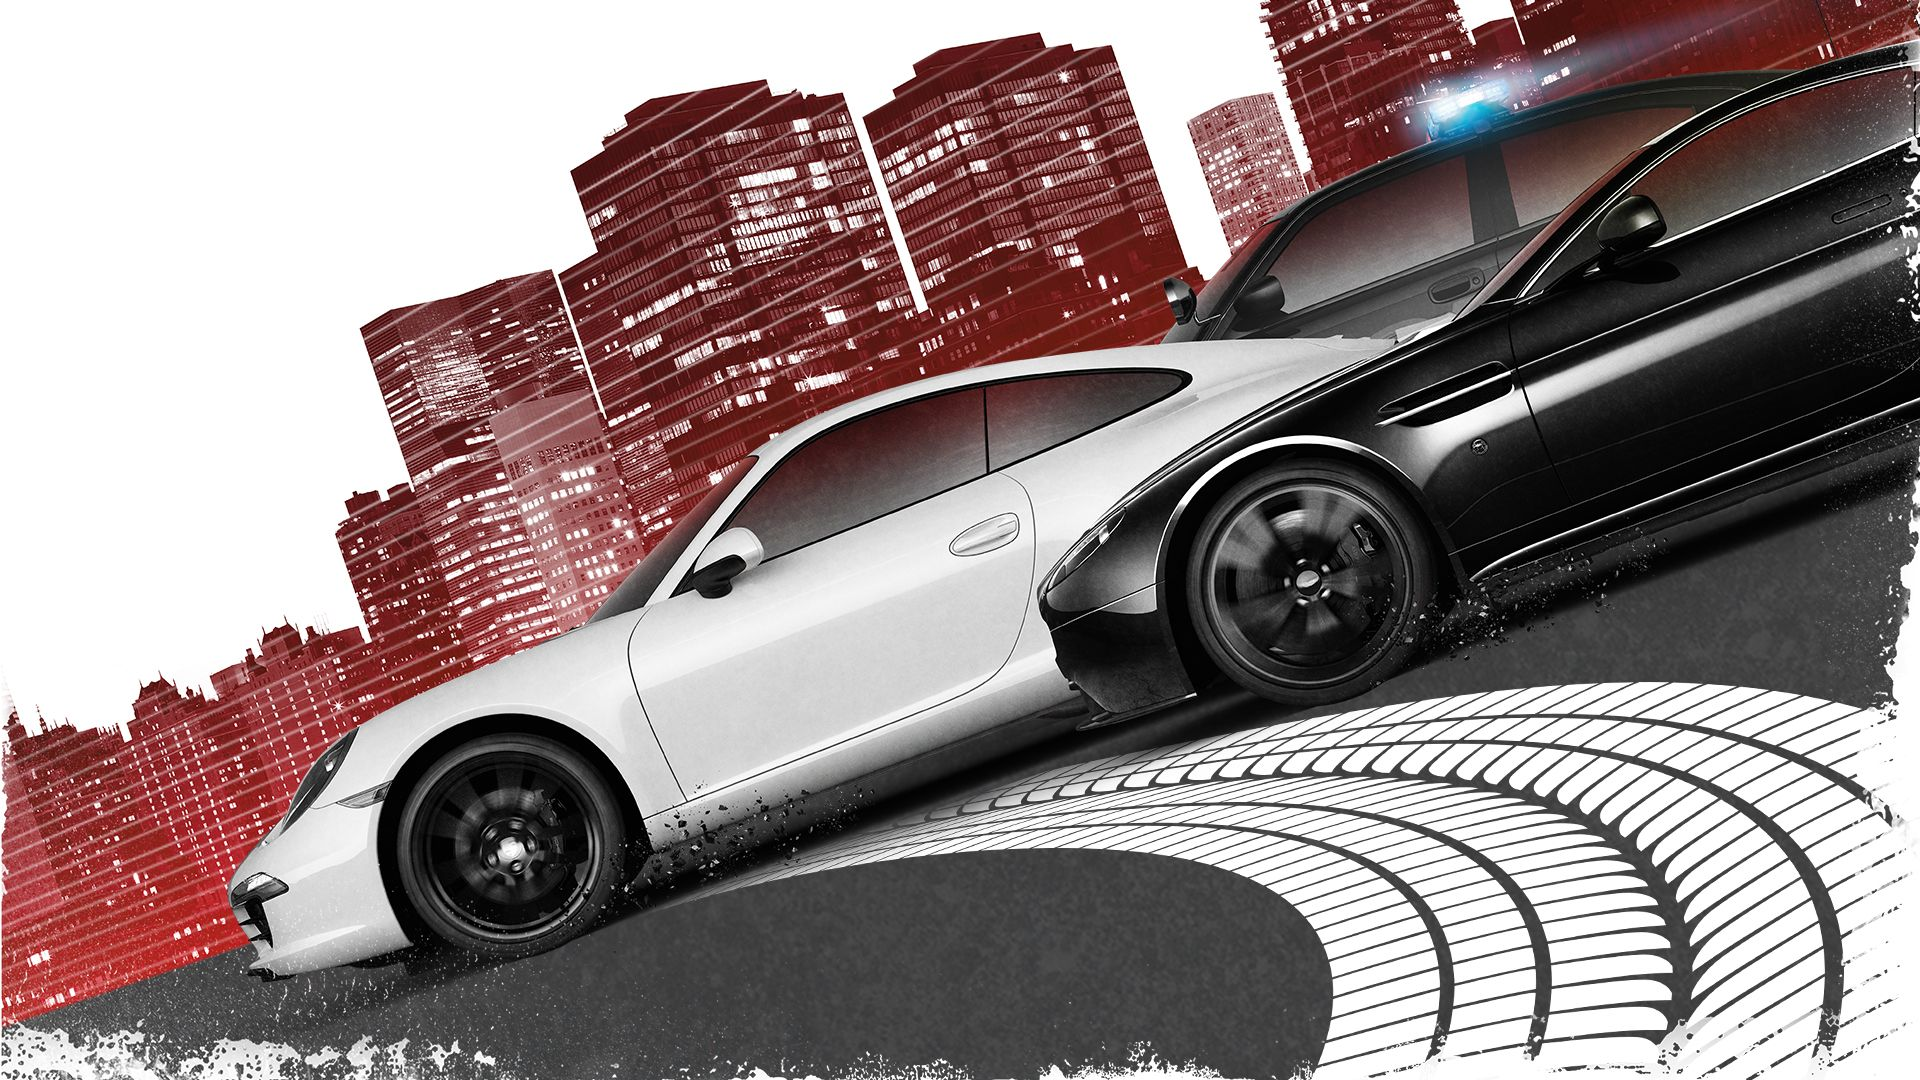 Nfs-mw 2012 100% + dlcs savegame download youtube.